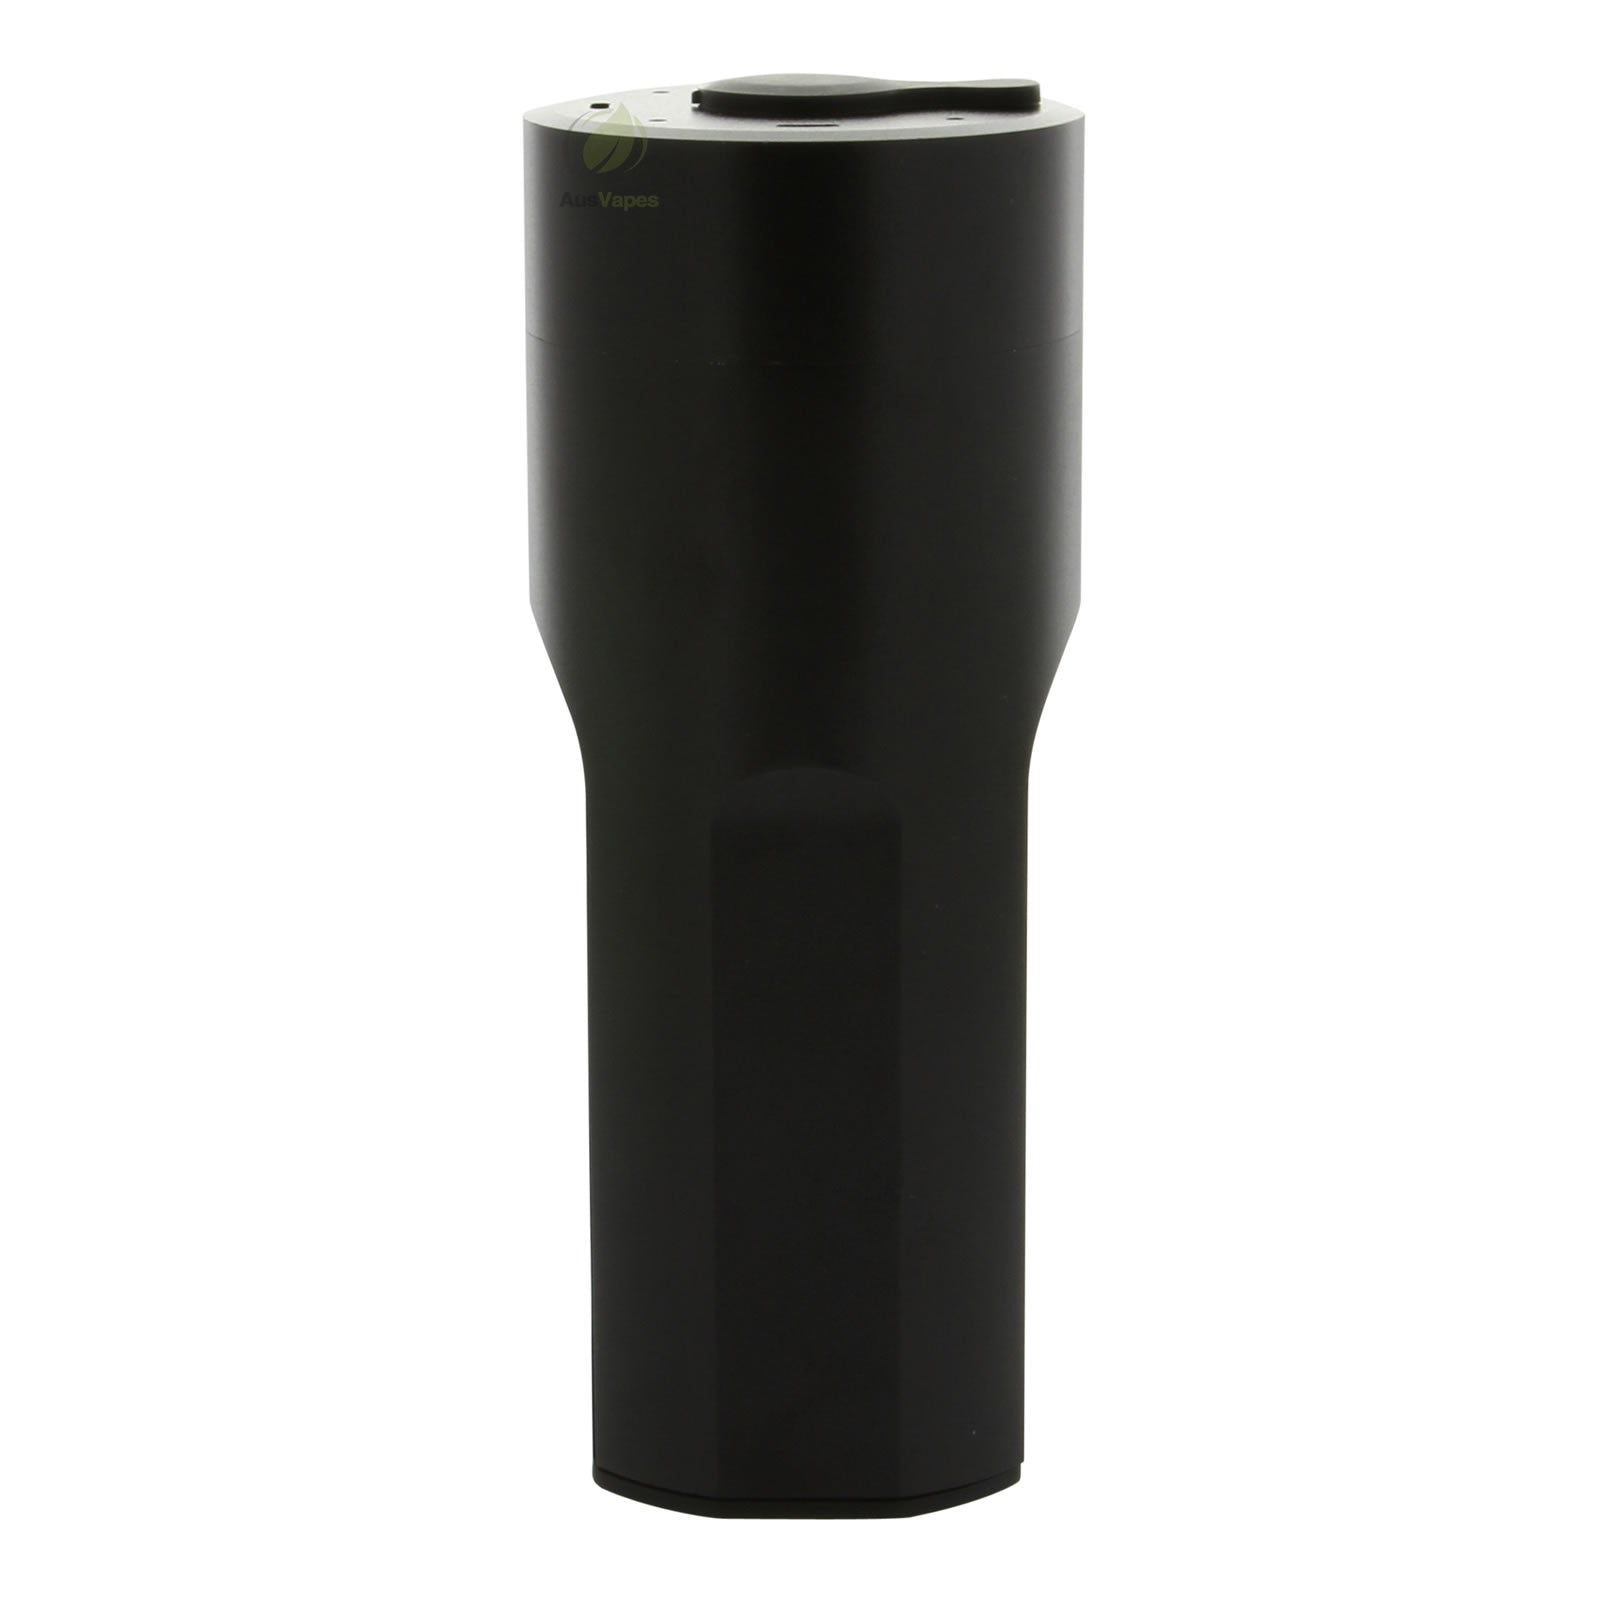 arizer solo vaporizer side view